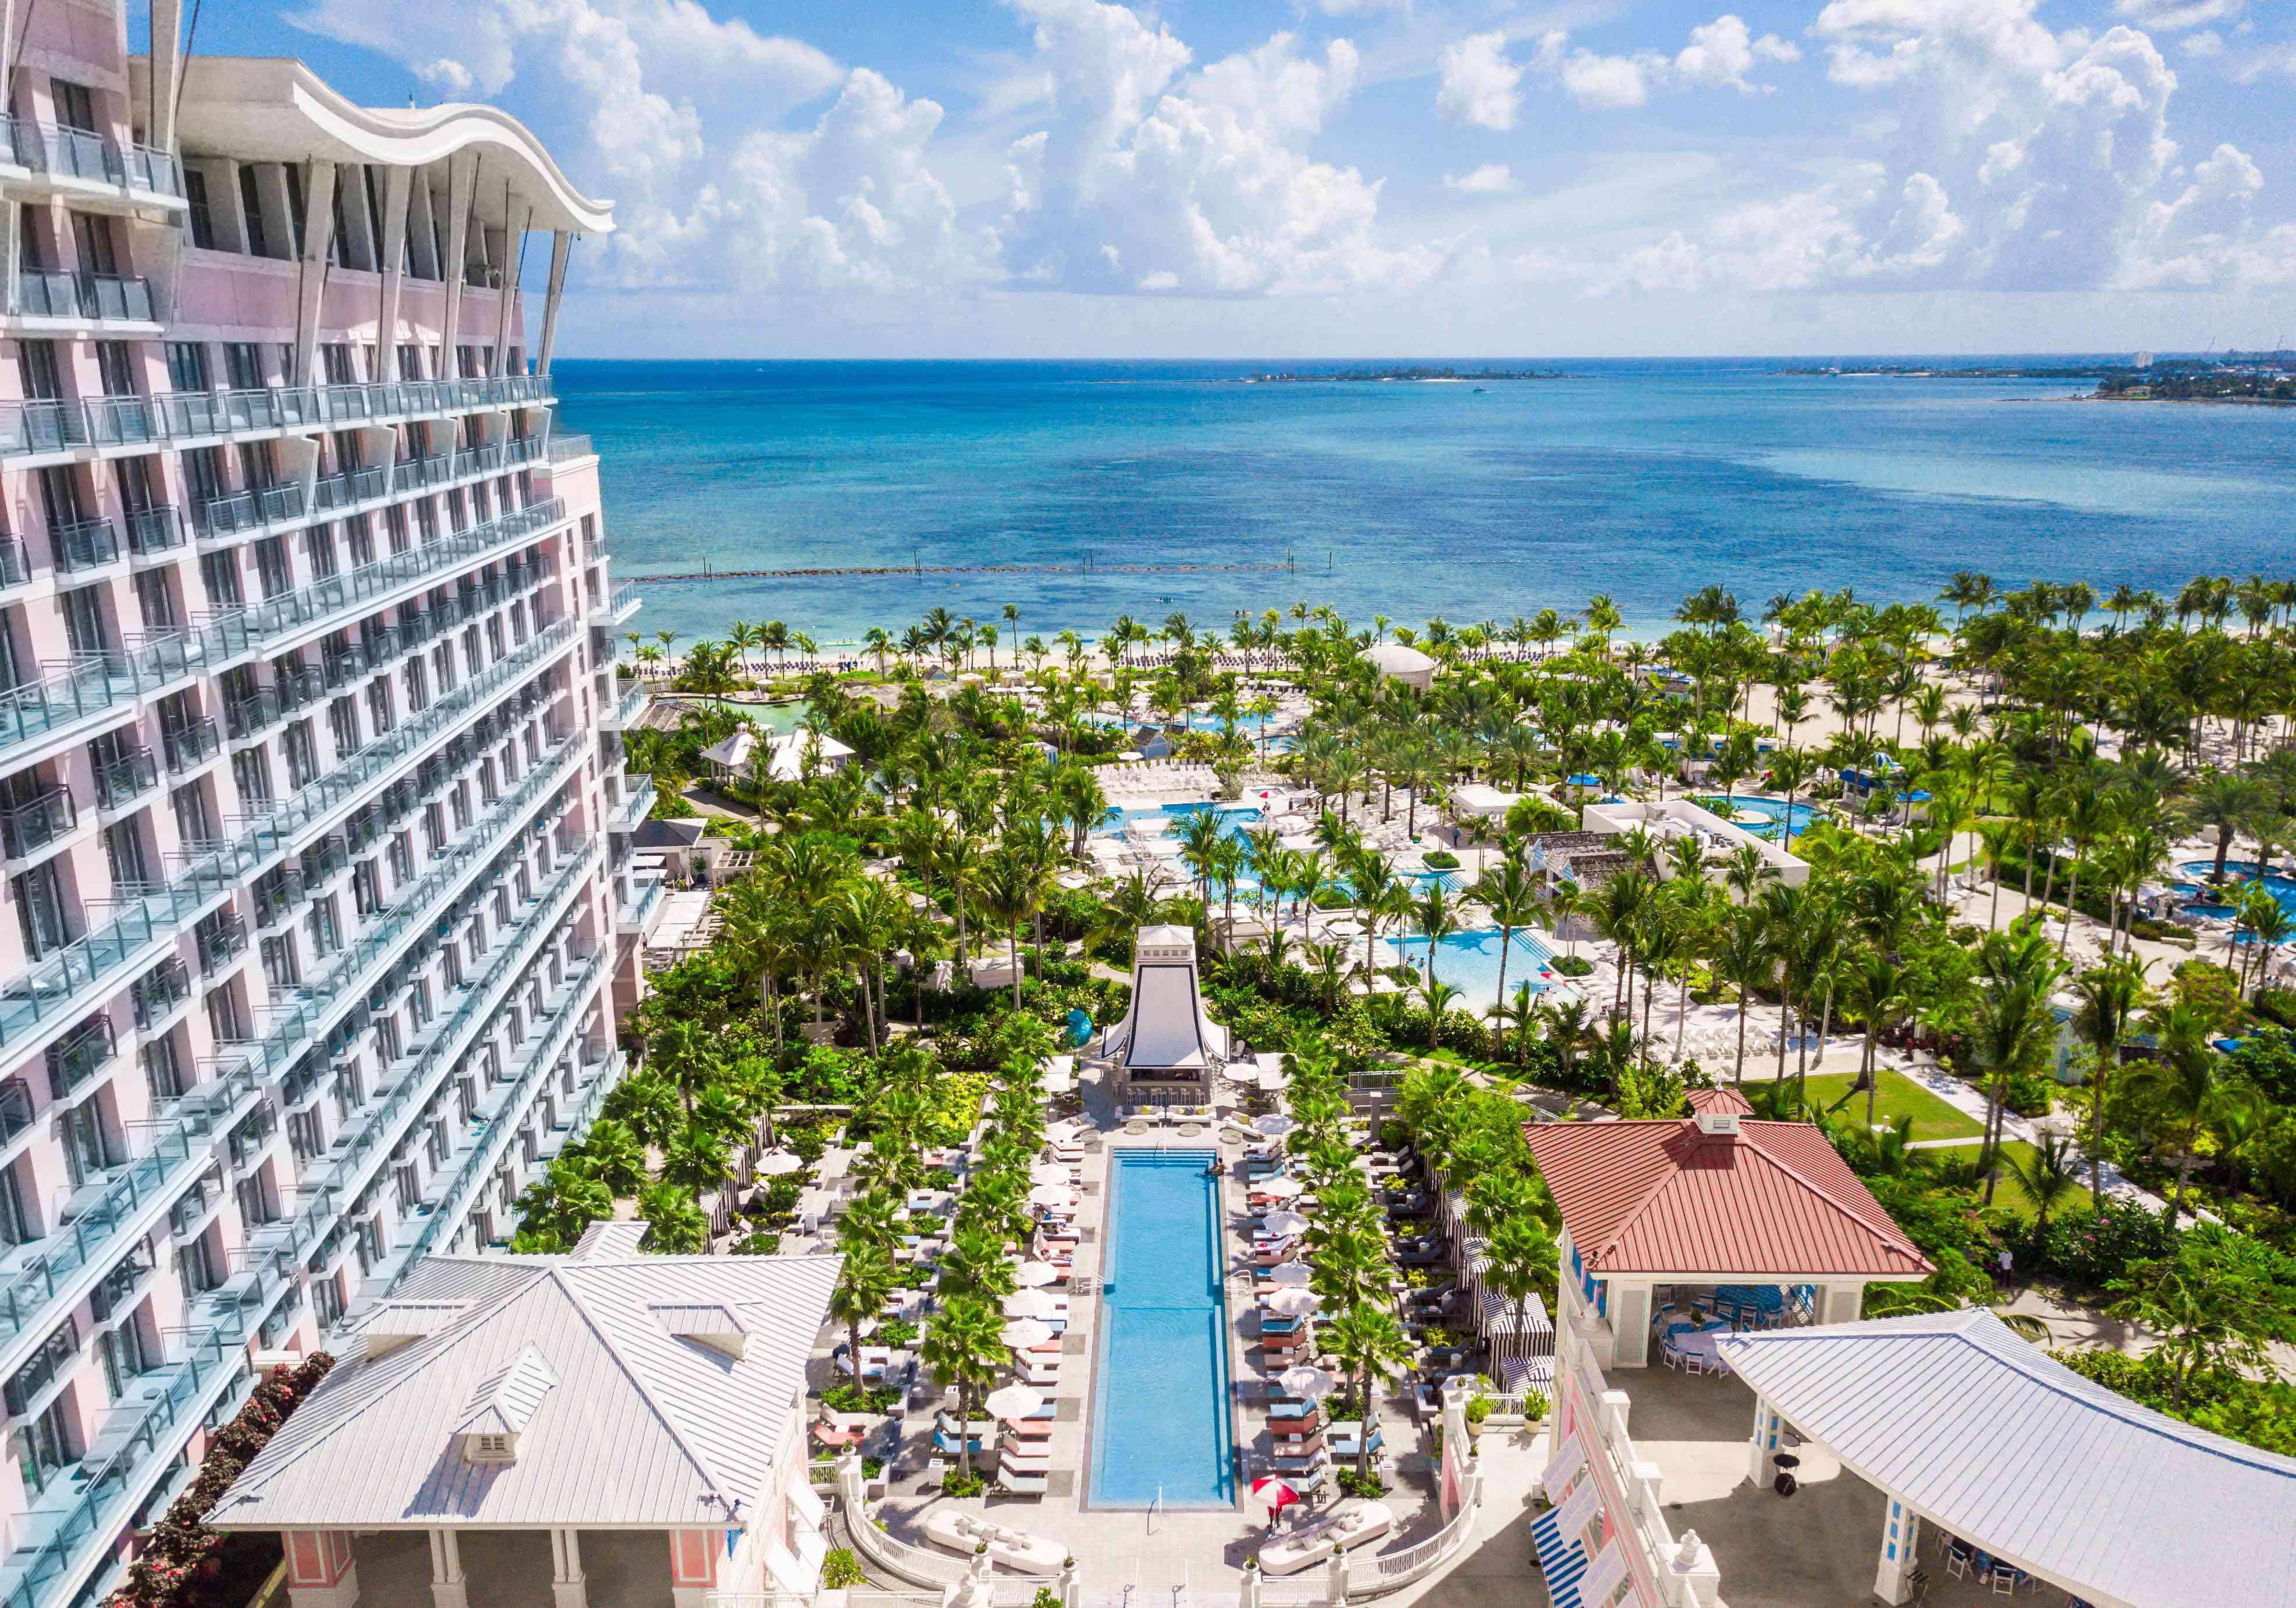 pool and ocean view from SLS Baha Mar